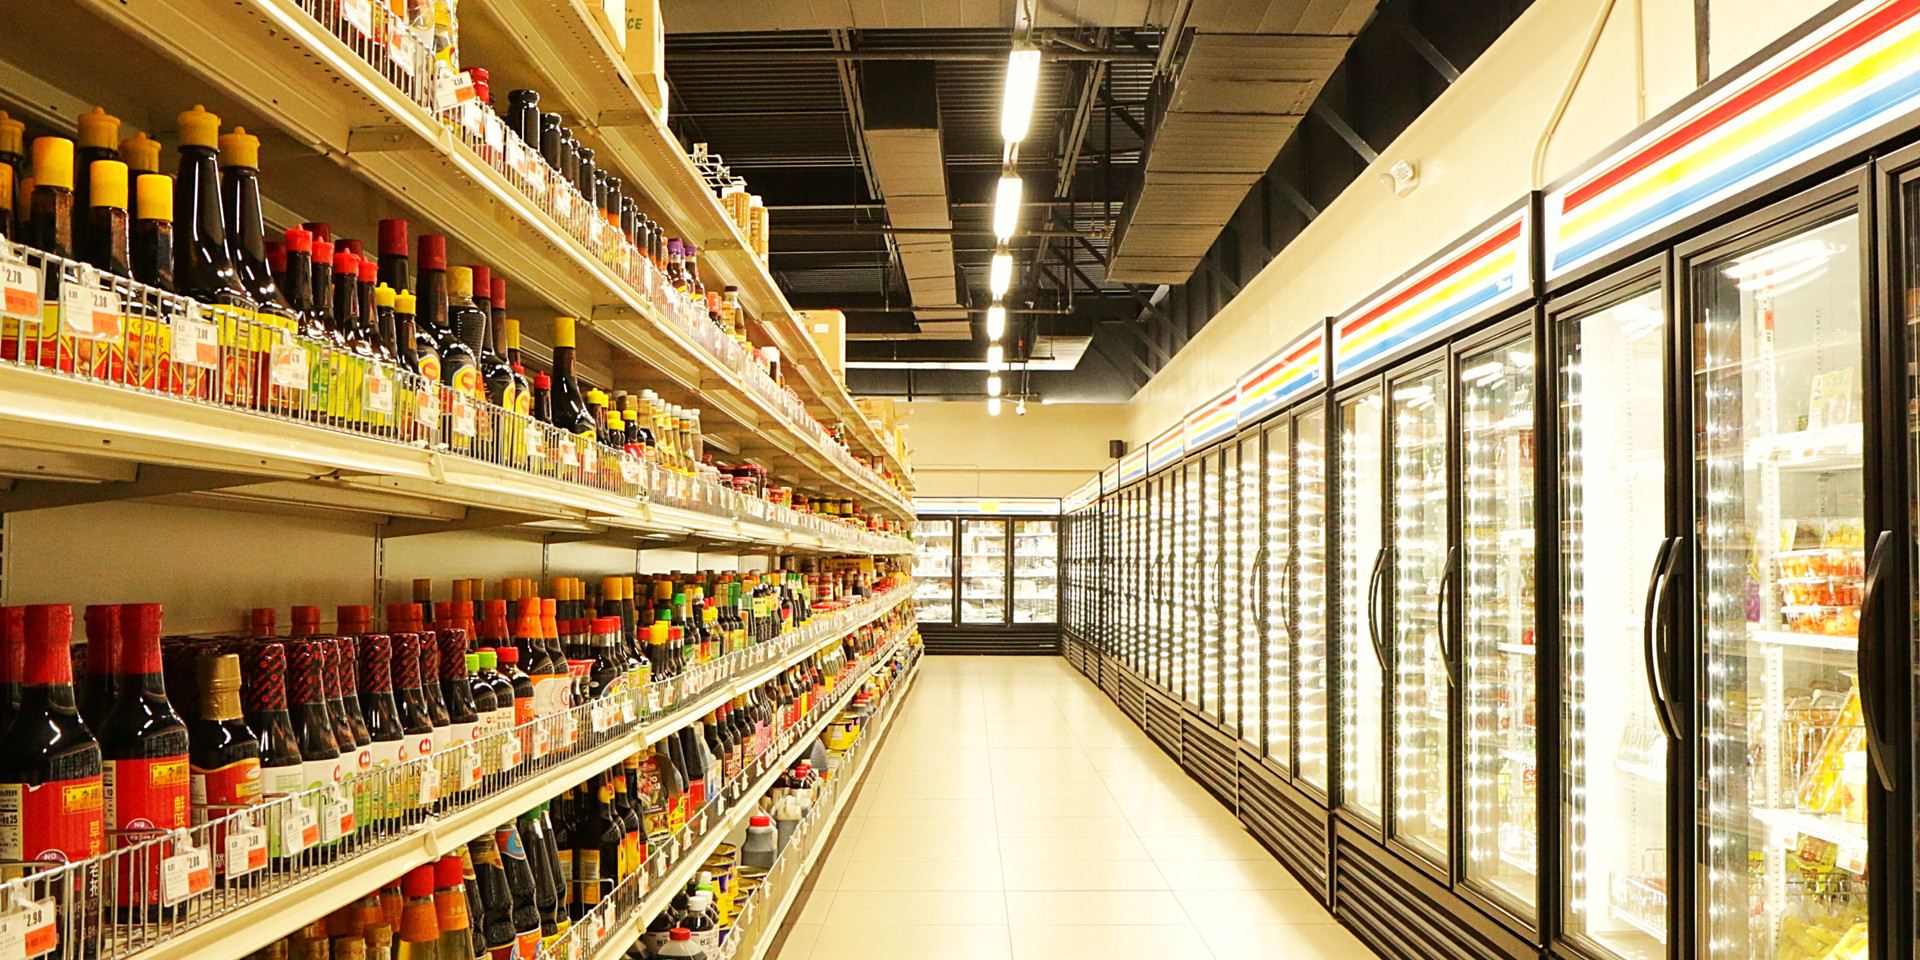 Asia Pacific Supermarket Interior